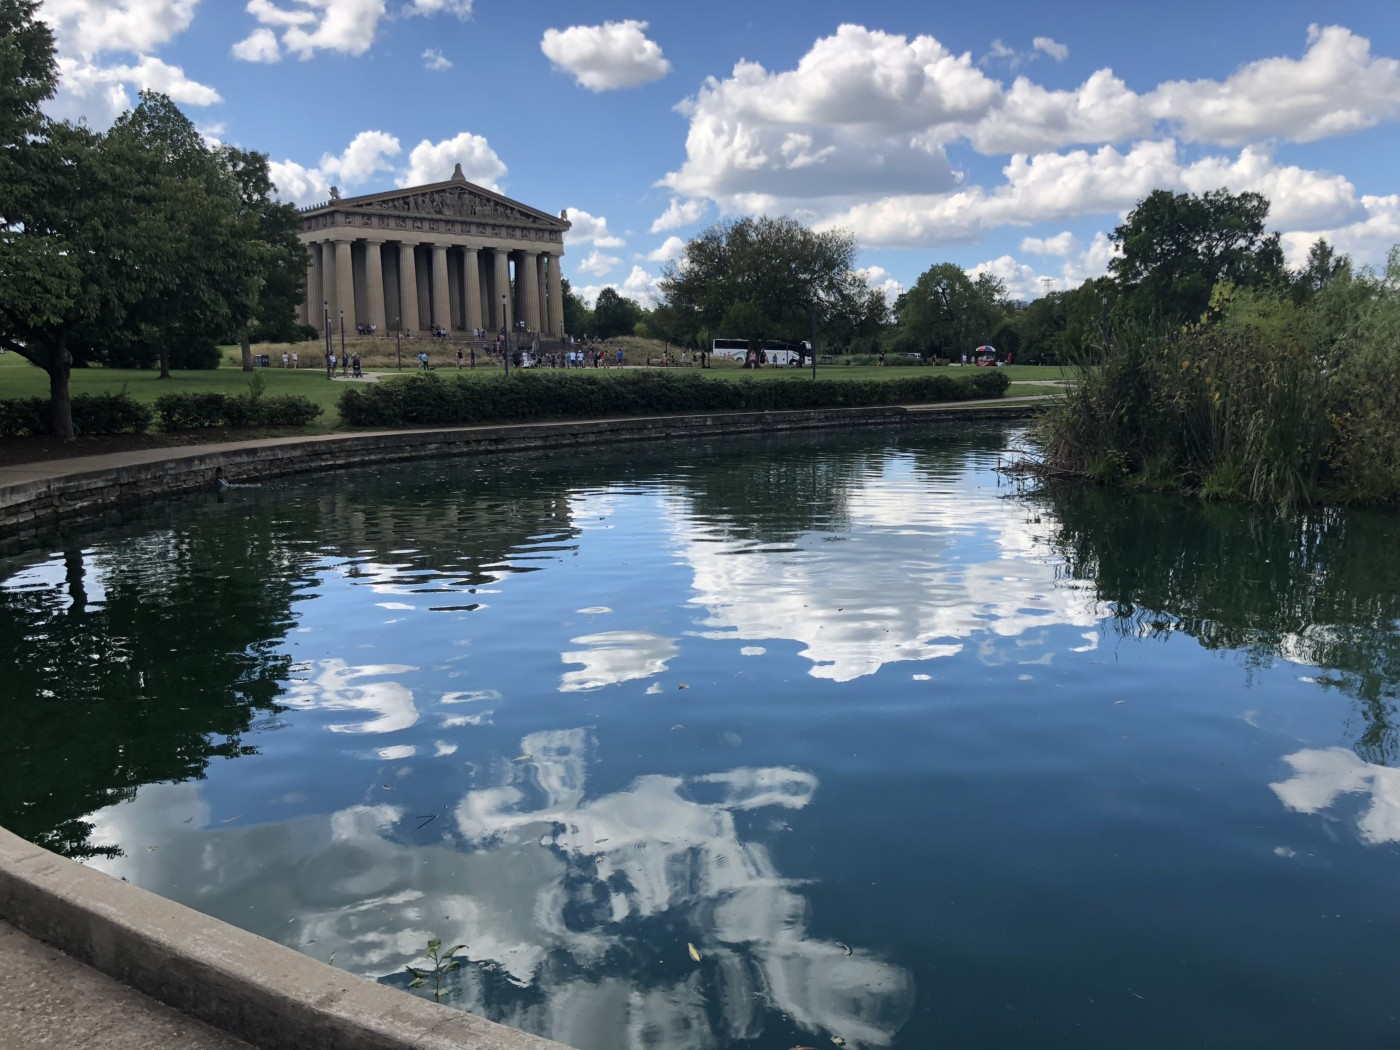 Visiting the Parthenon in Nashville, Tennessee